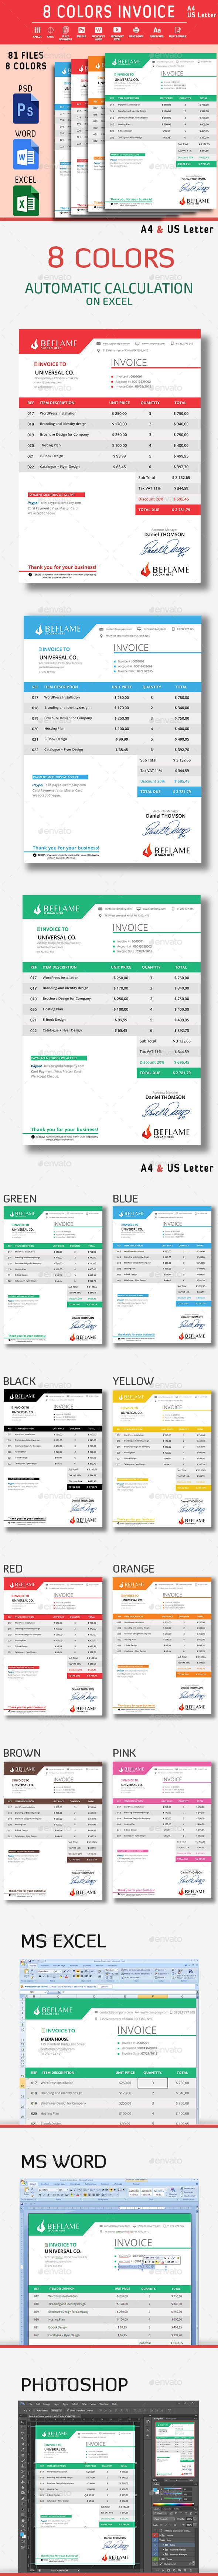 Invoice Page 22 Best Invoice Design  Invoice Template  Invoice In Graphics .